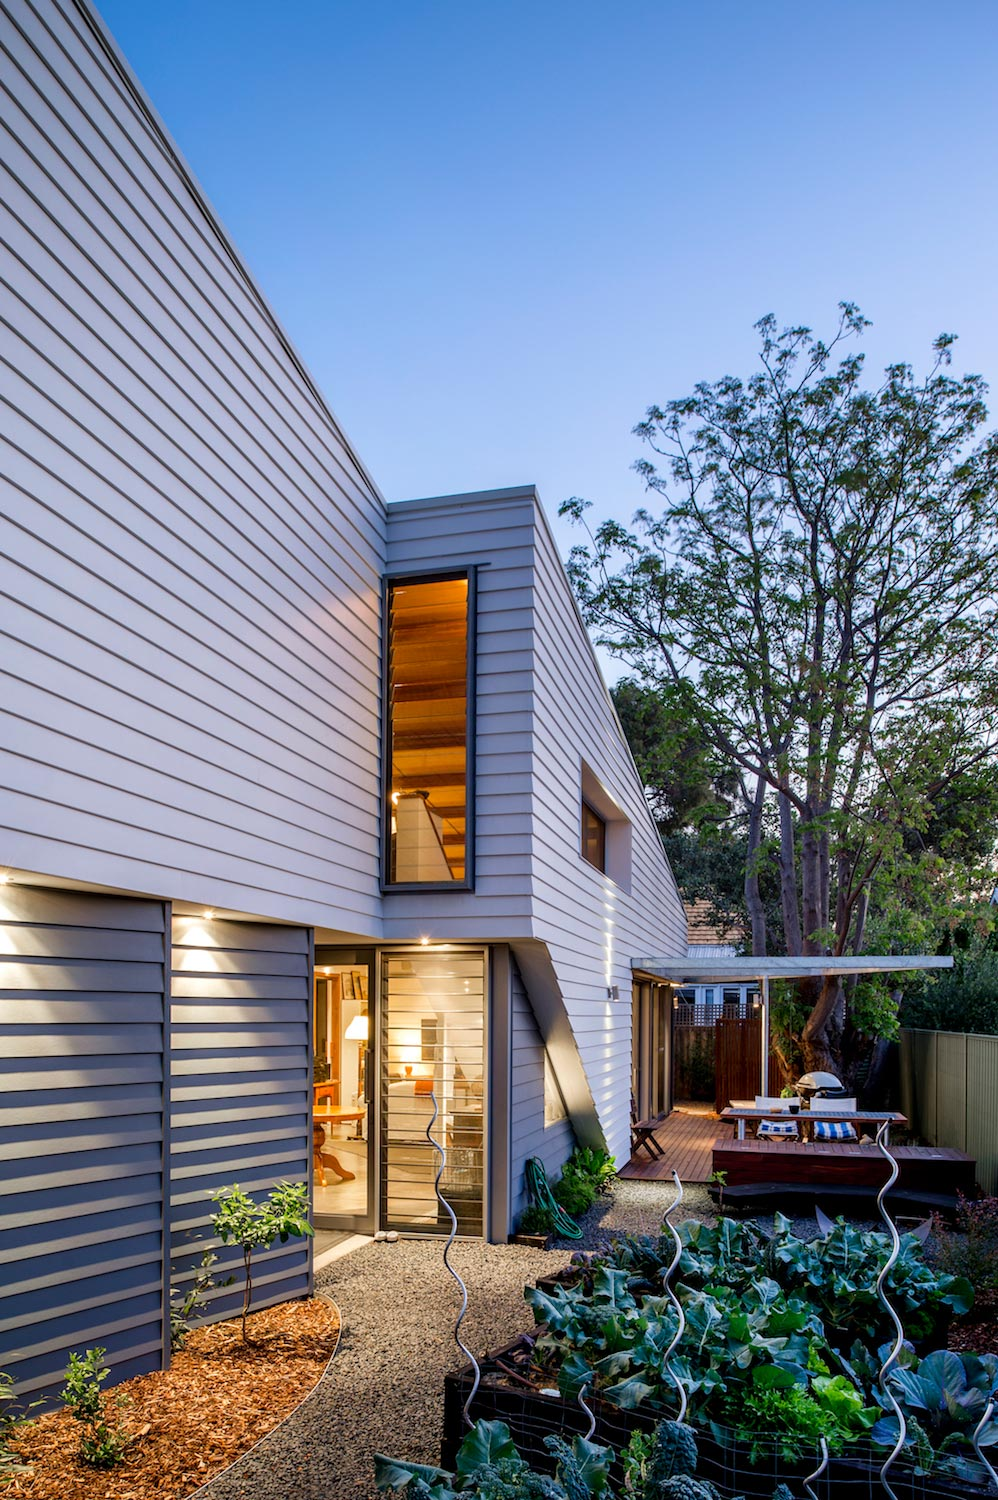 An efficient design and construction techniques to provide open plan living over two levels